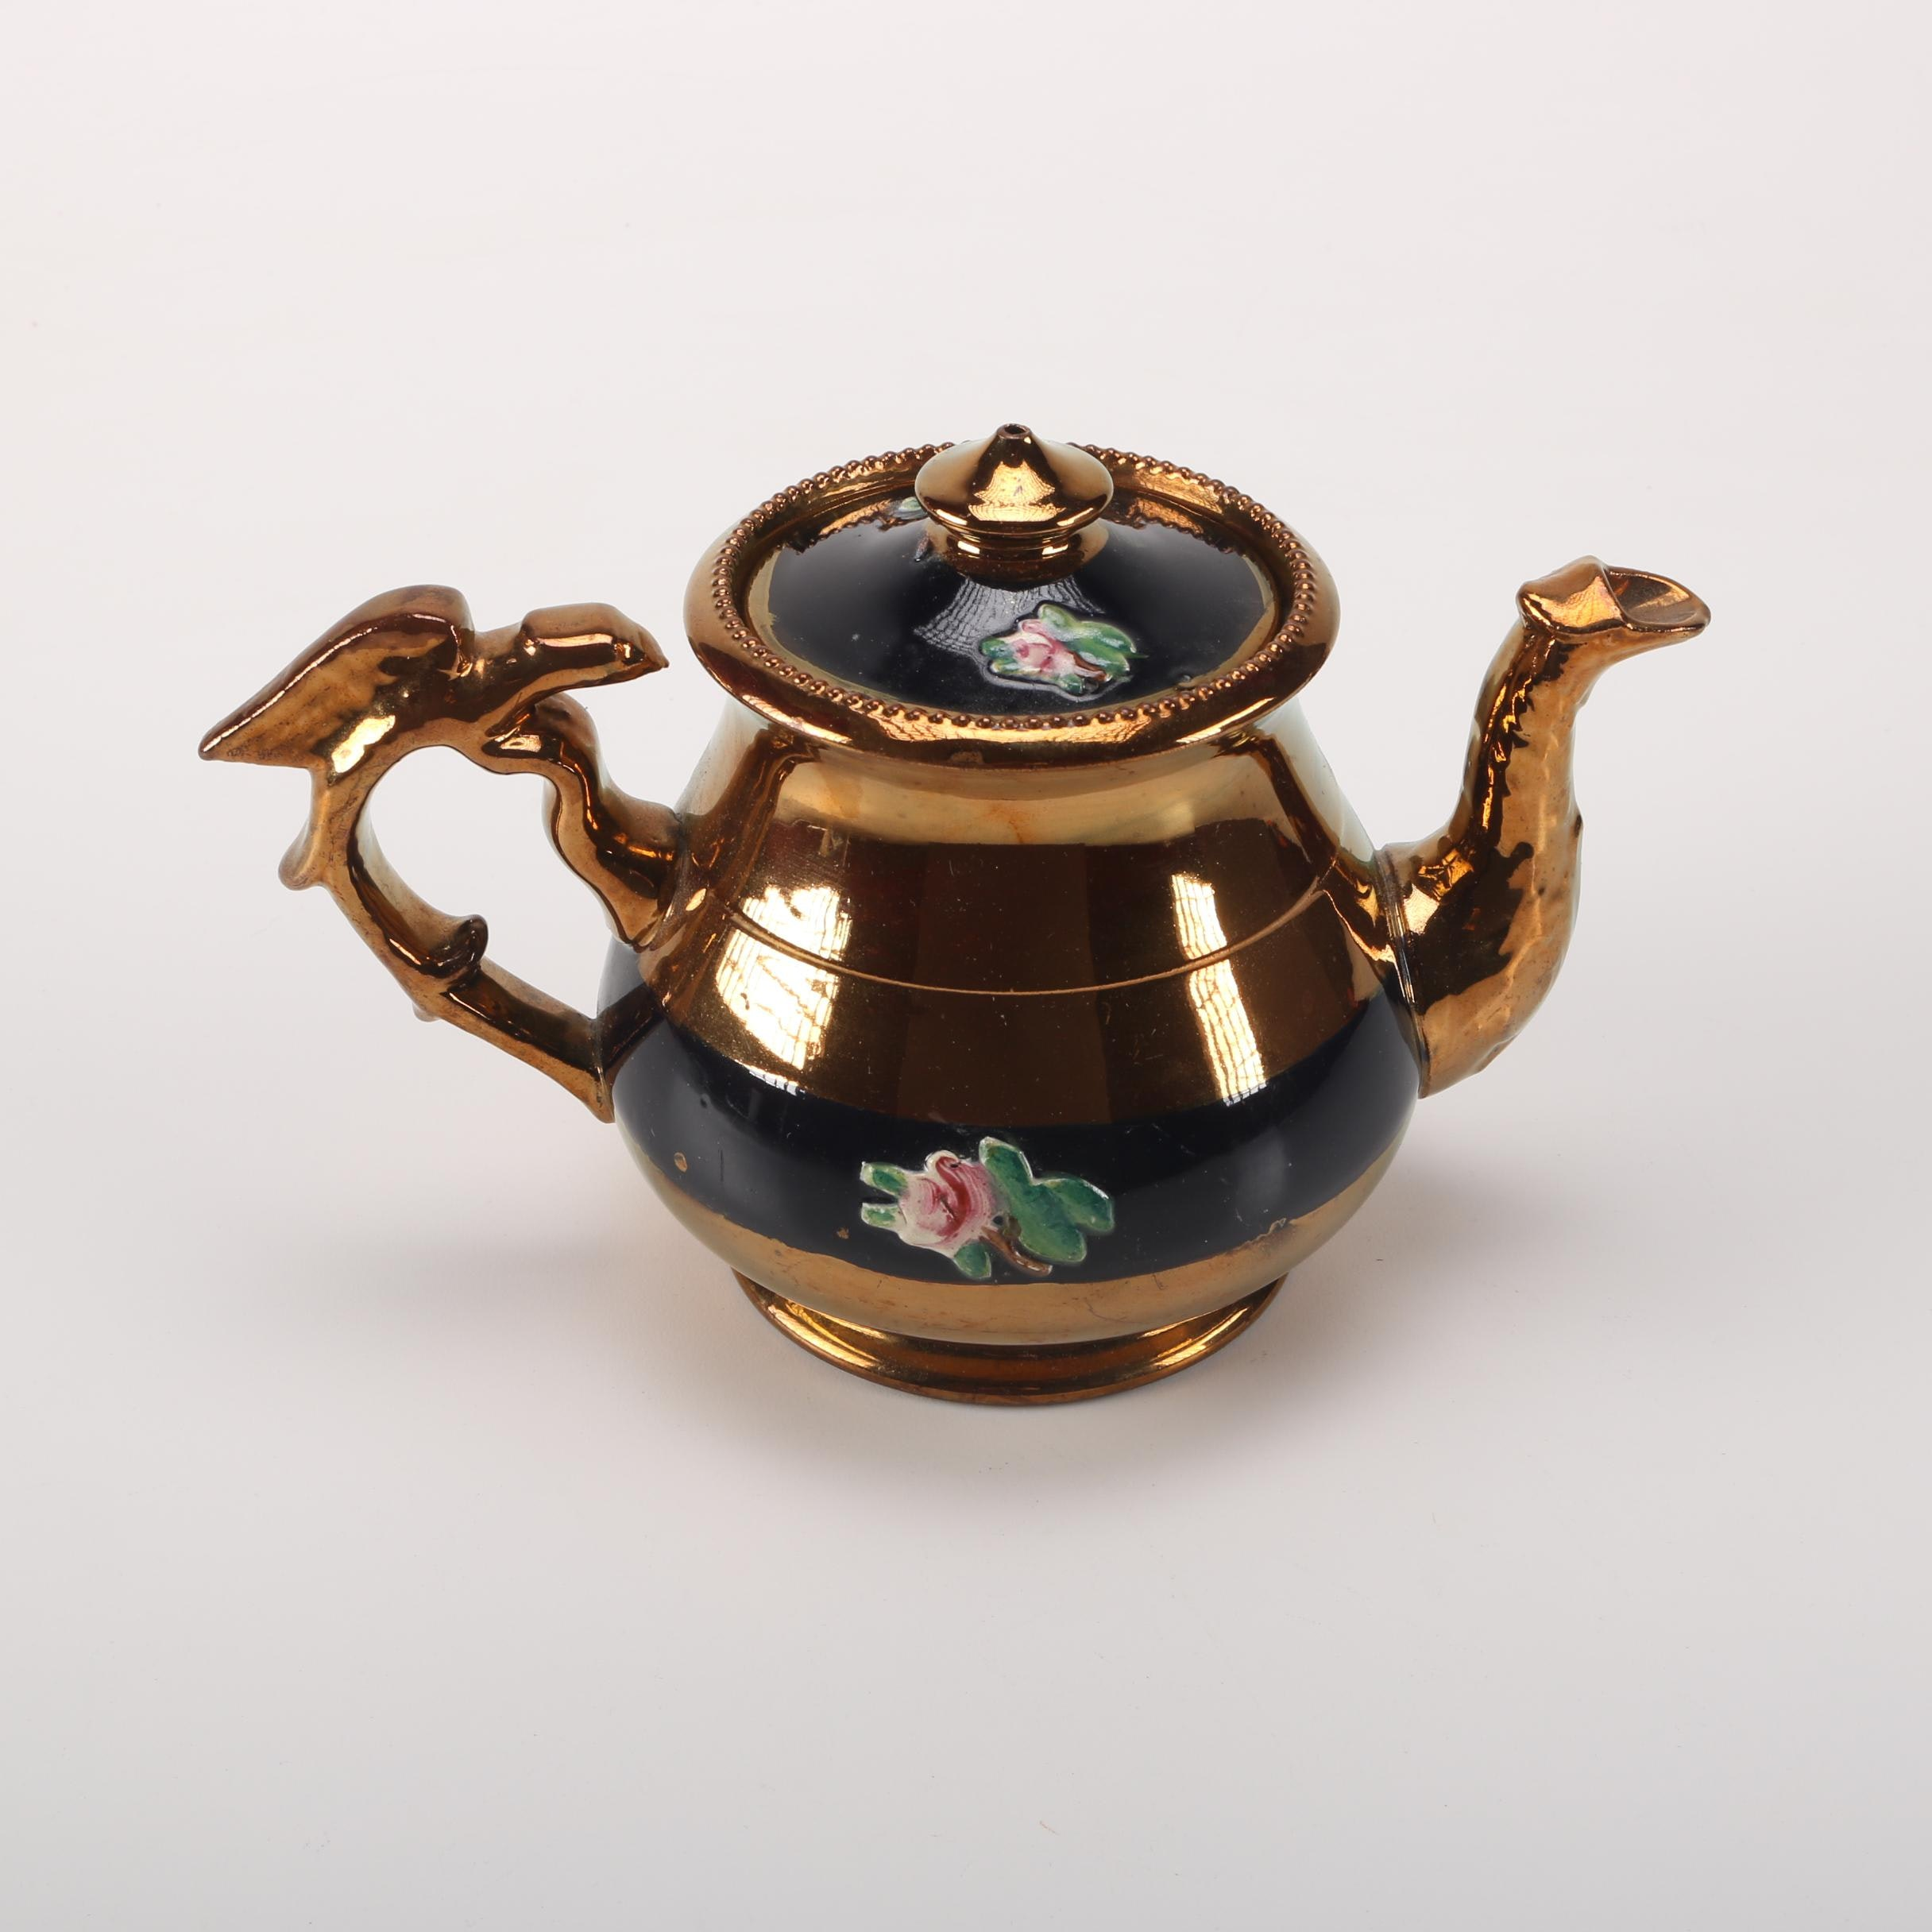 Copper Lusterware Teapot with Floral Reliefs